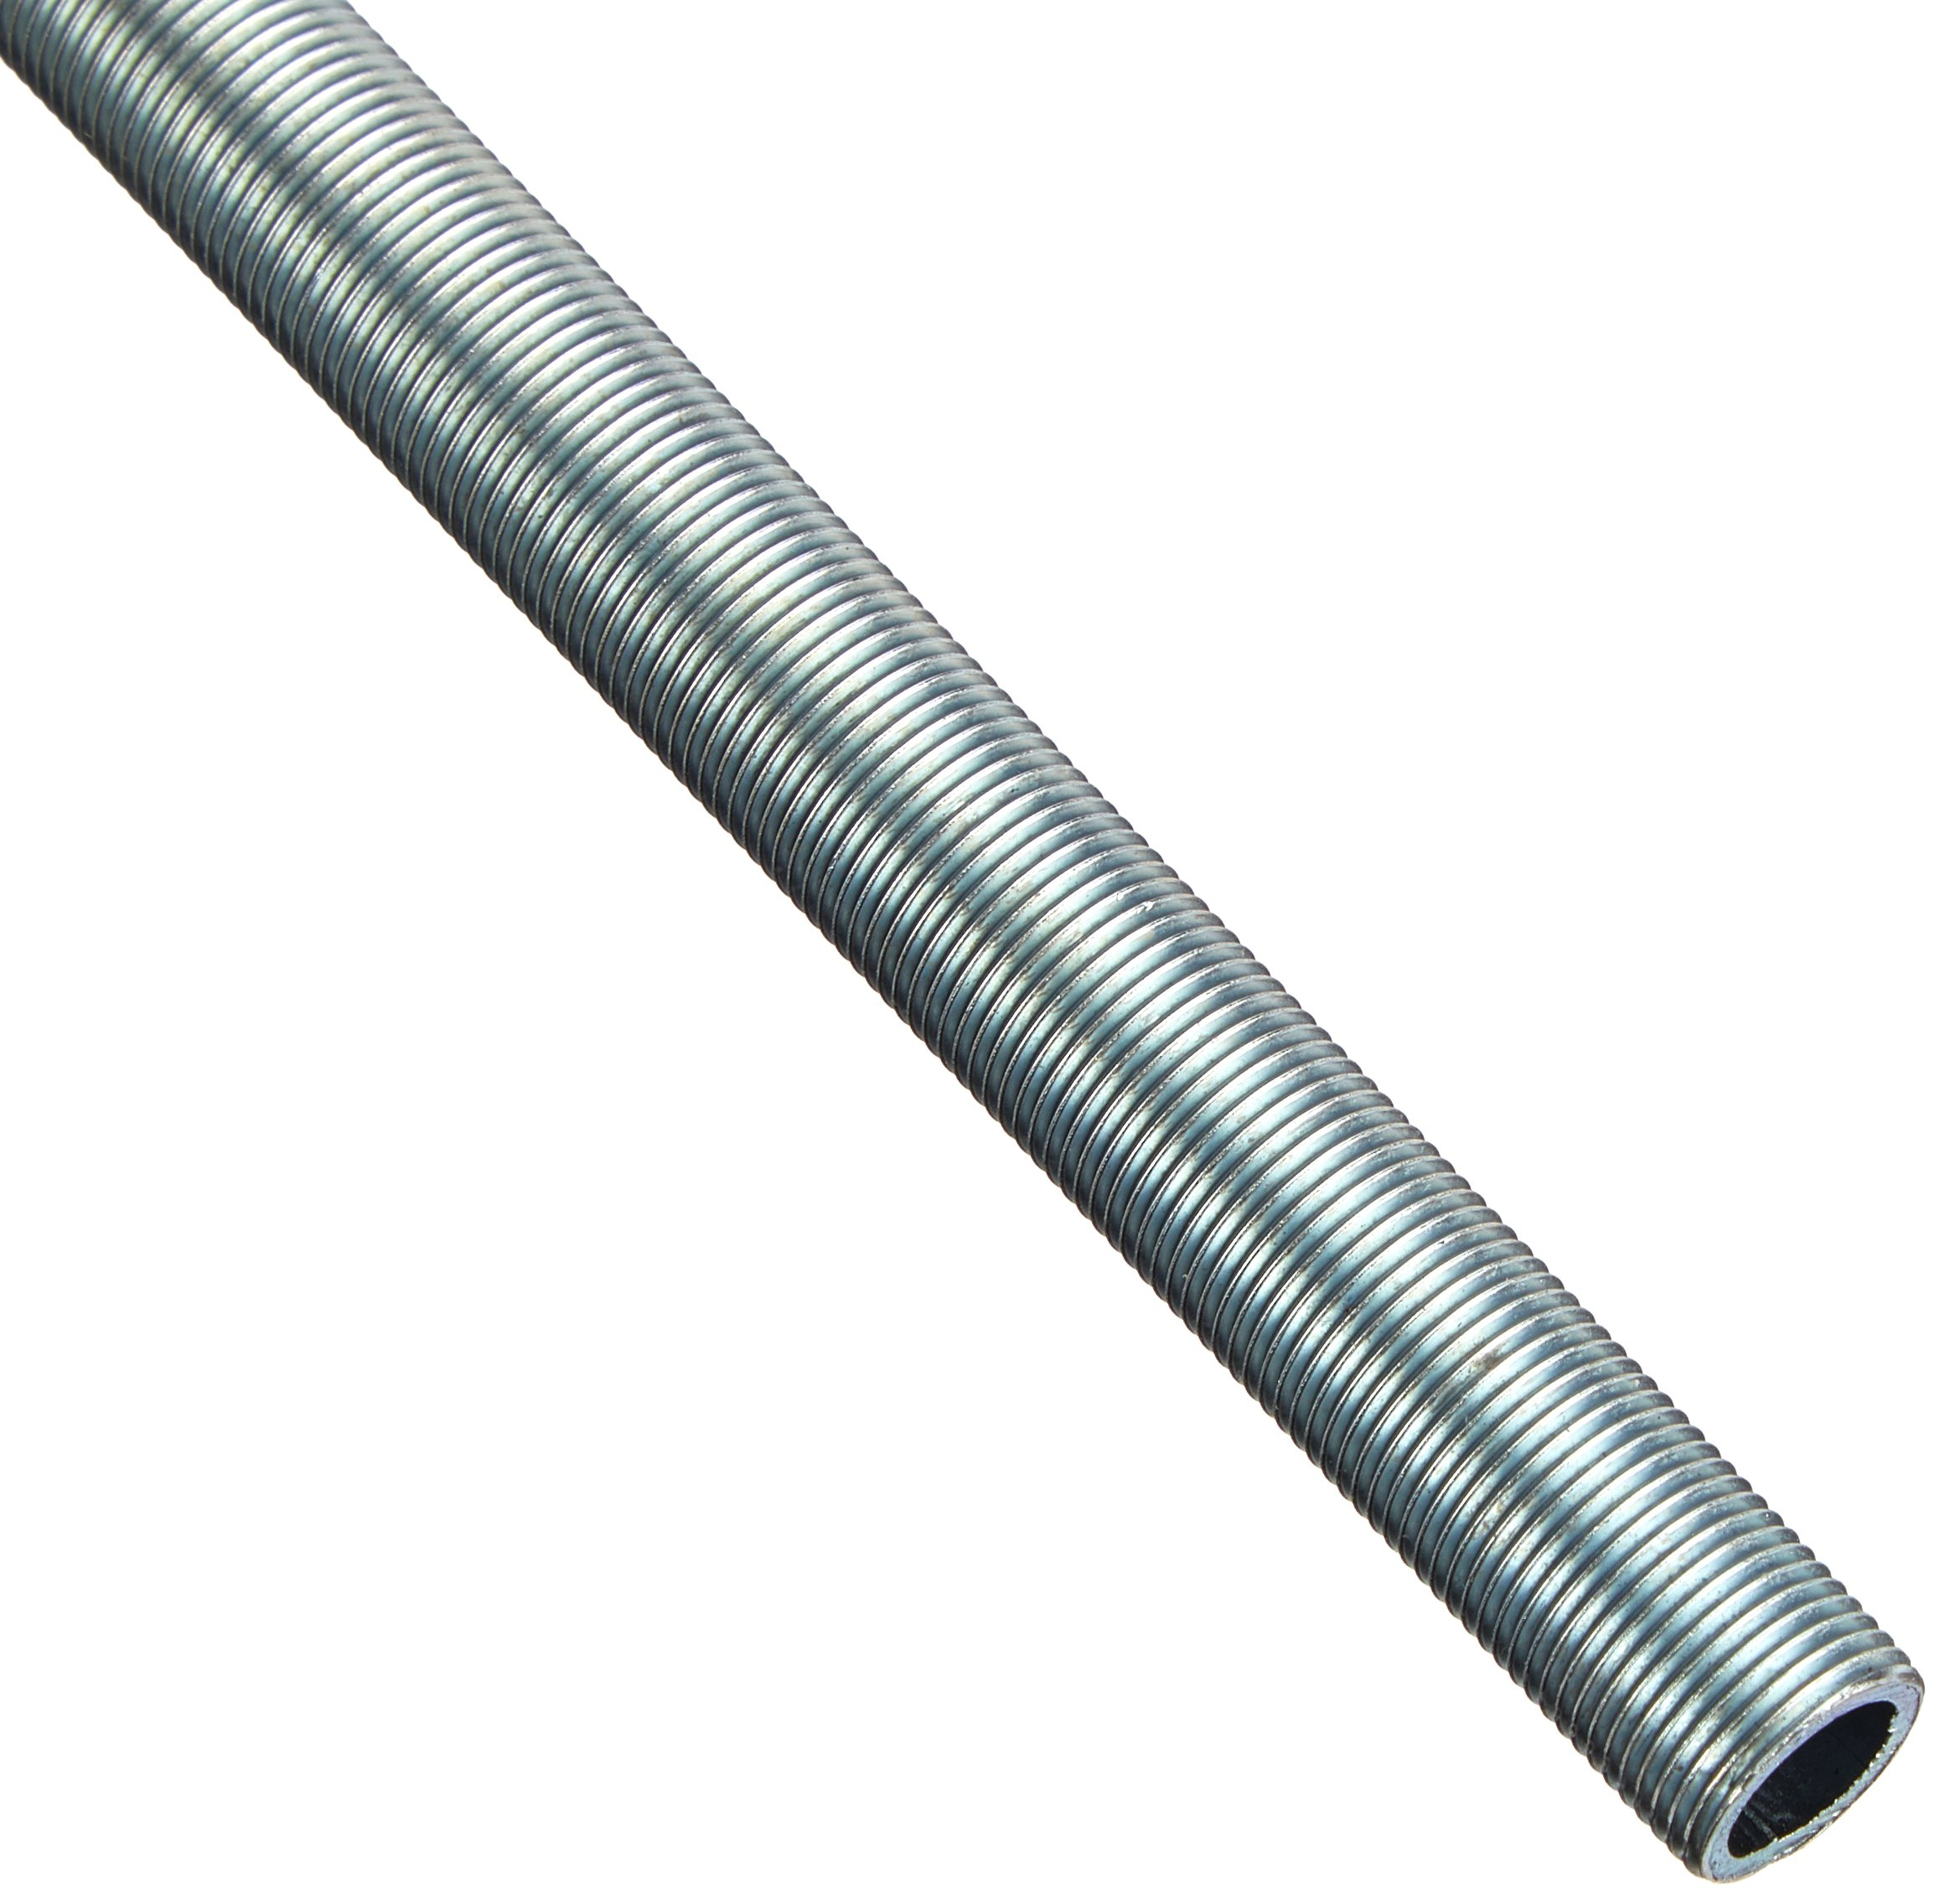 Max-Power dy4131311 Threaded Bar Tiges 13 x 1 mt, 1 Set, Blue